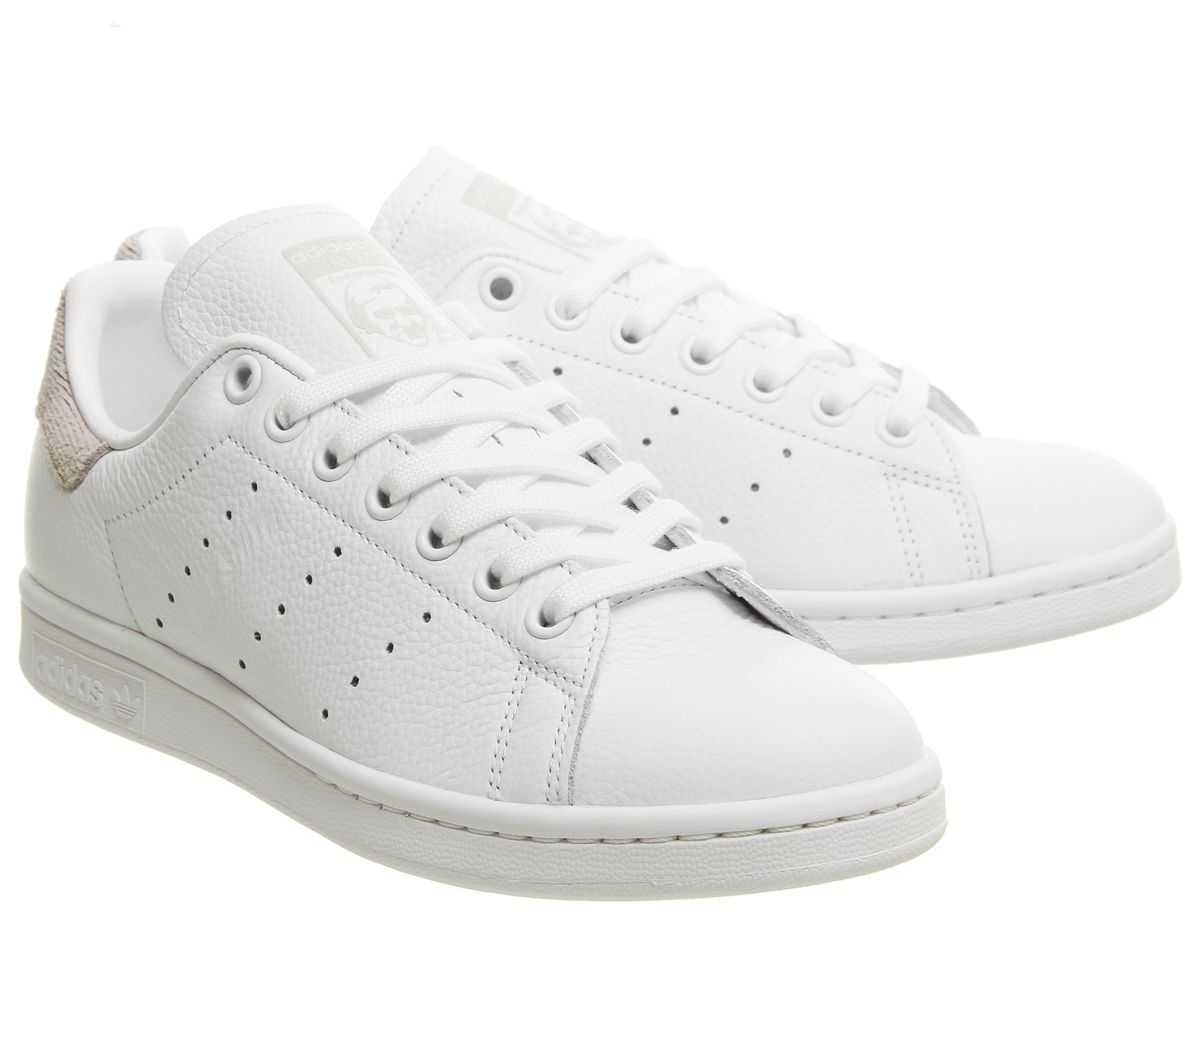 Short-Femme-Adidas-Stan-Smith-Baskets-White-Orchid-Tint-Baskets-Chaussures miniature 8